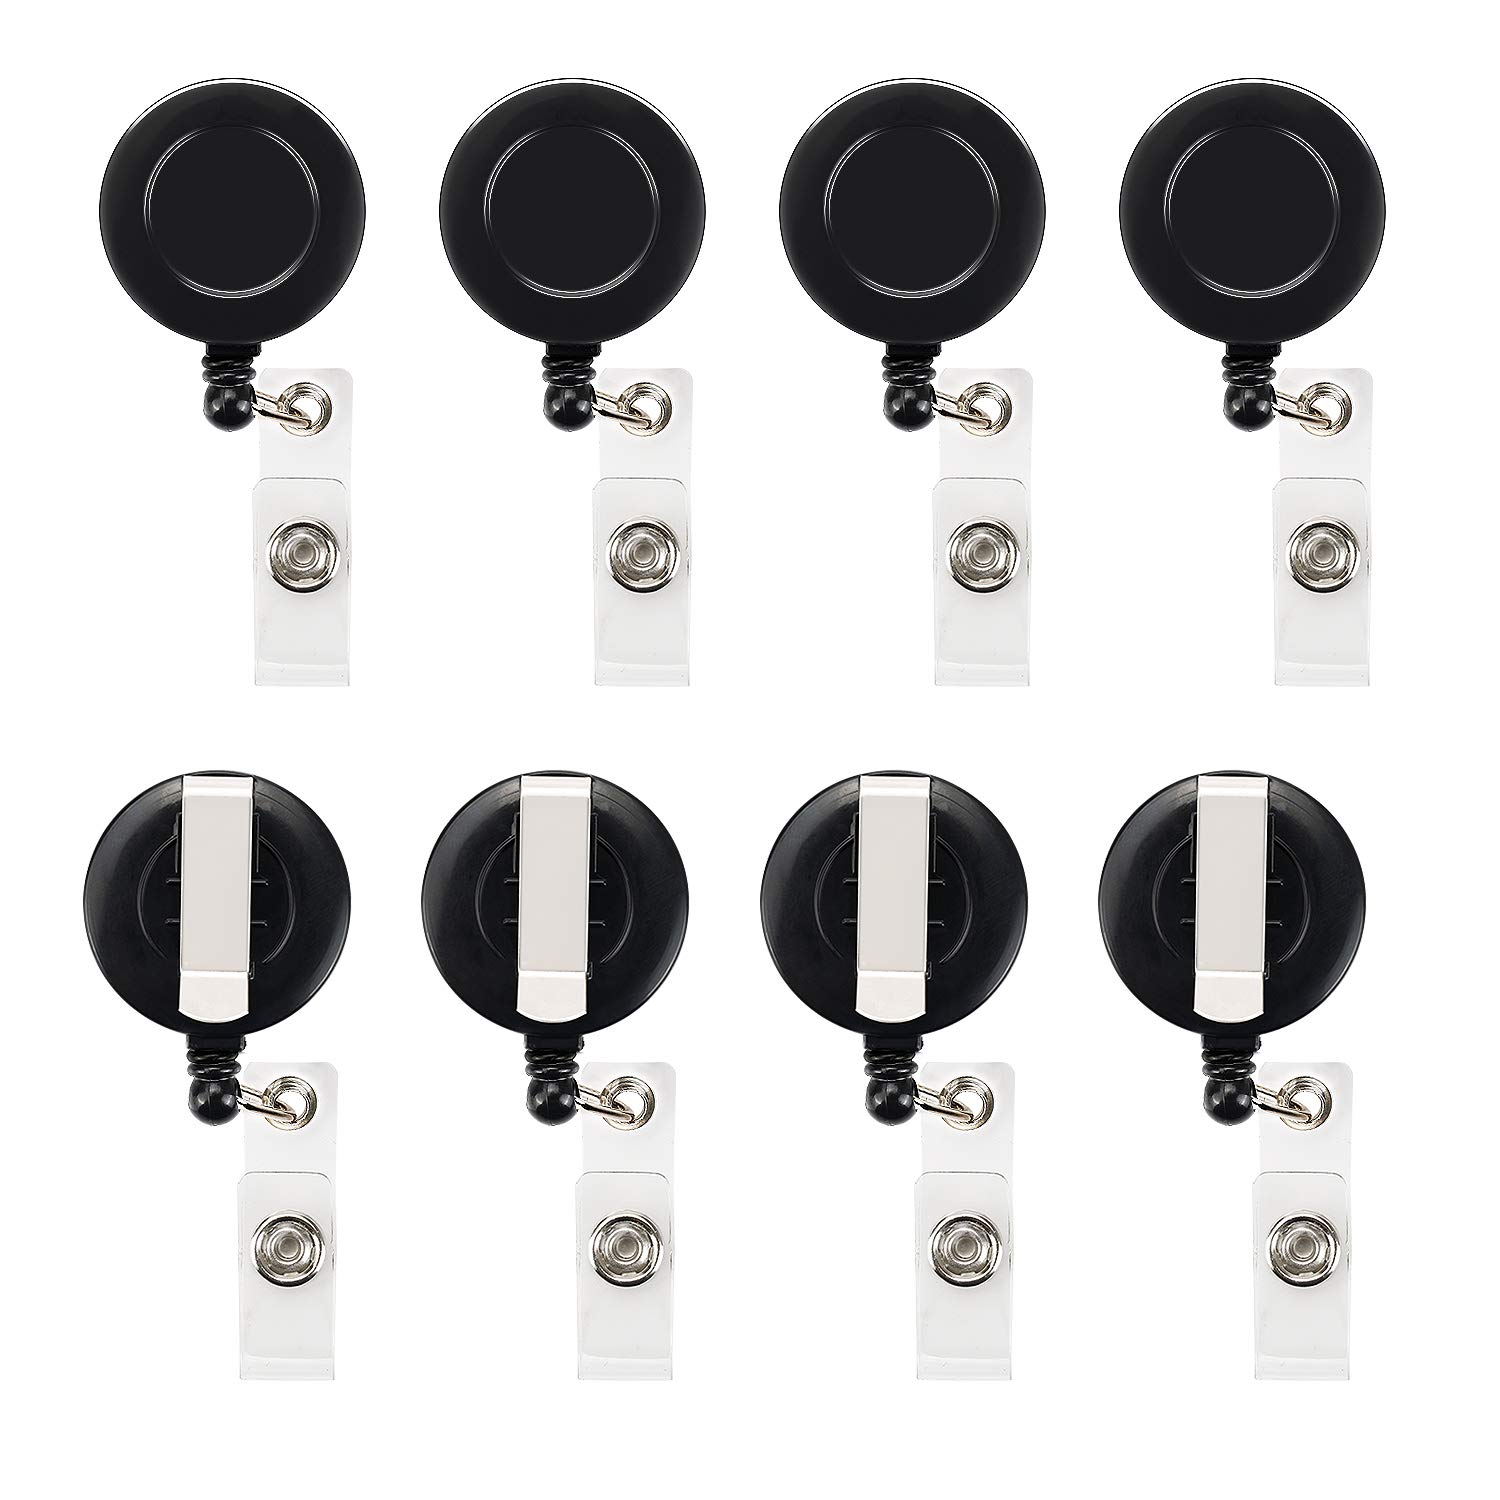 40 Pcs Retractable Badge Reel Clips Holder for Hanging ID Card Key Chain (Black)